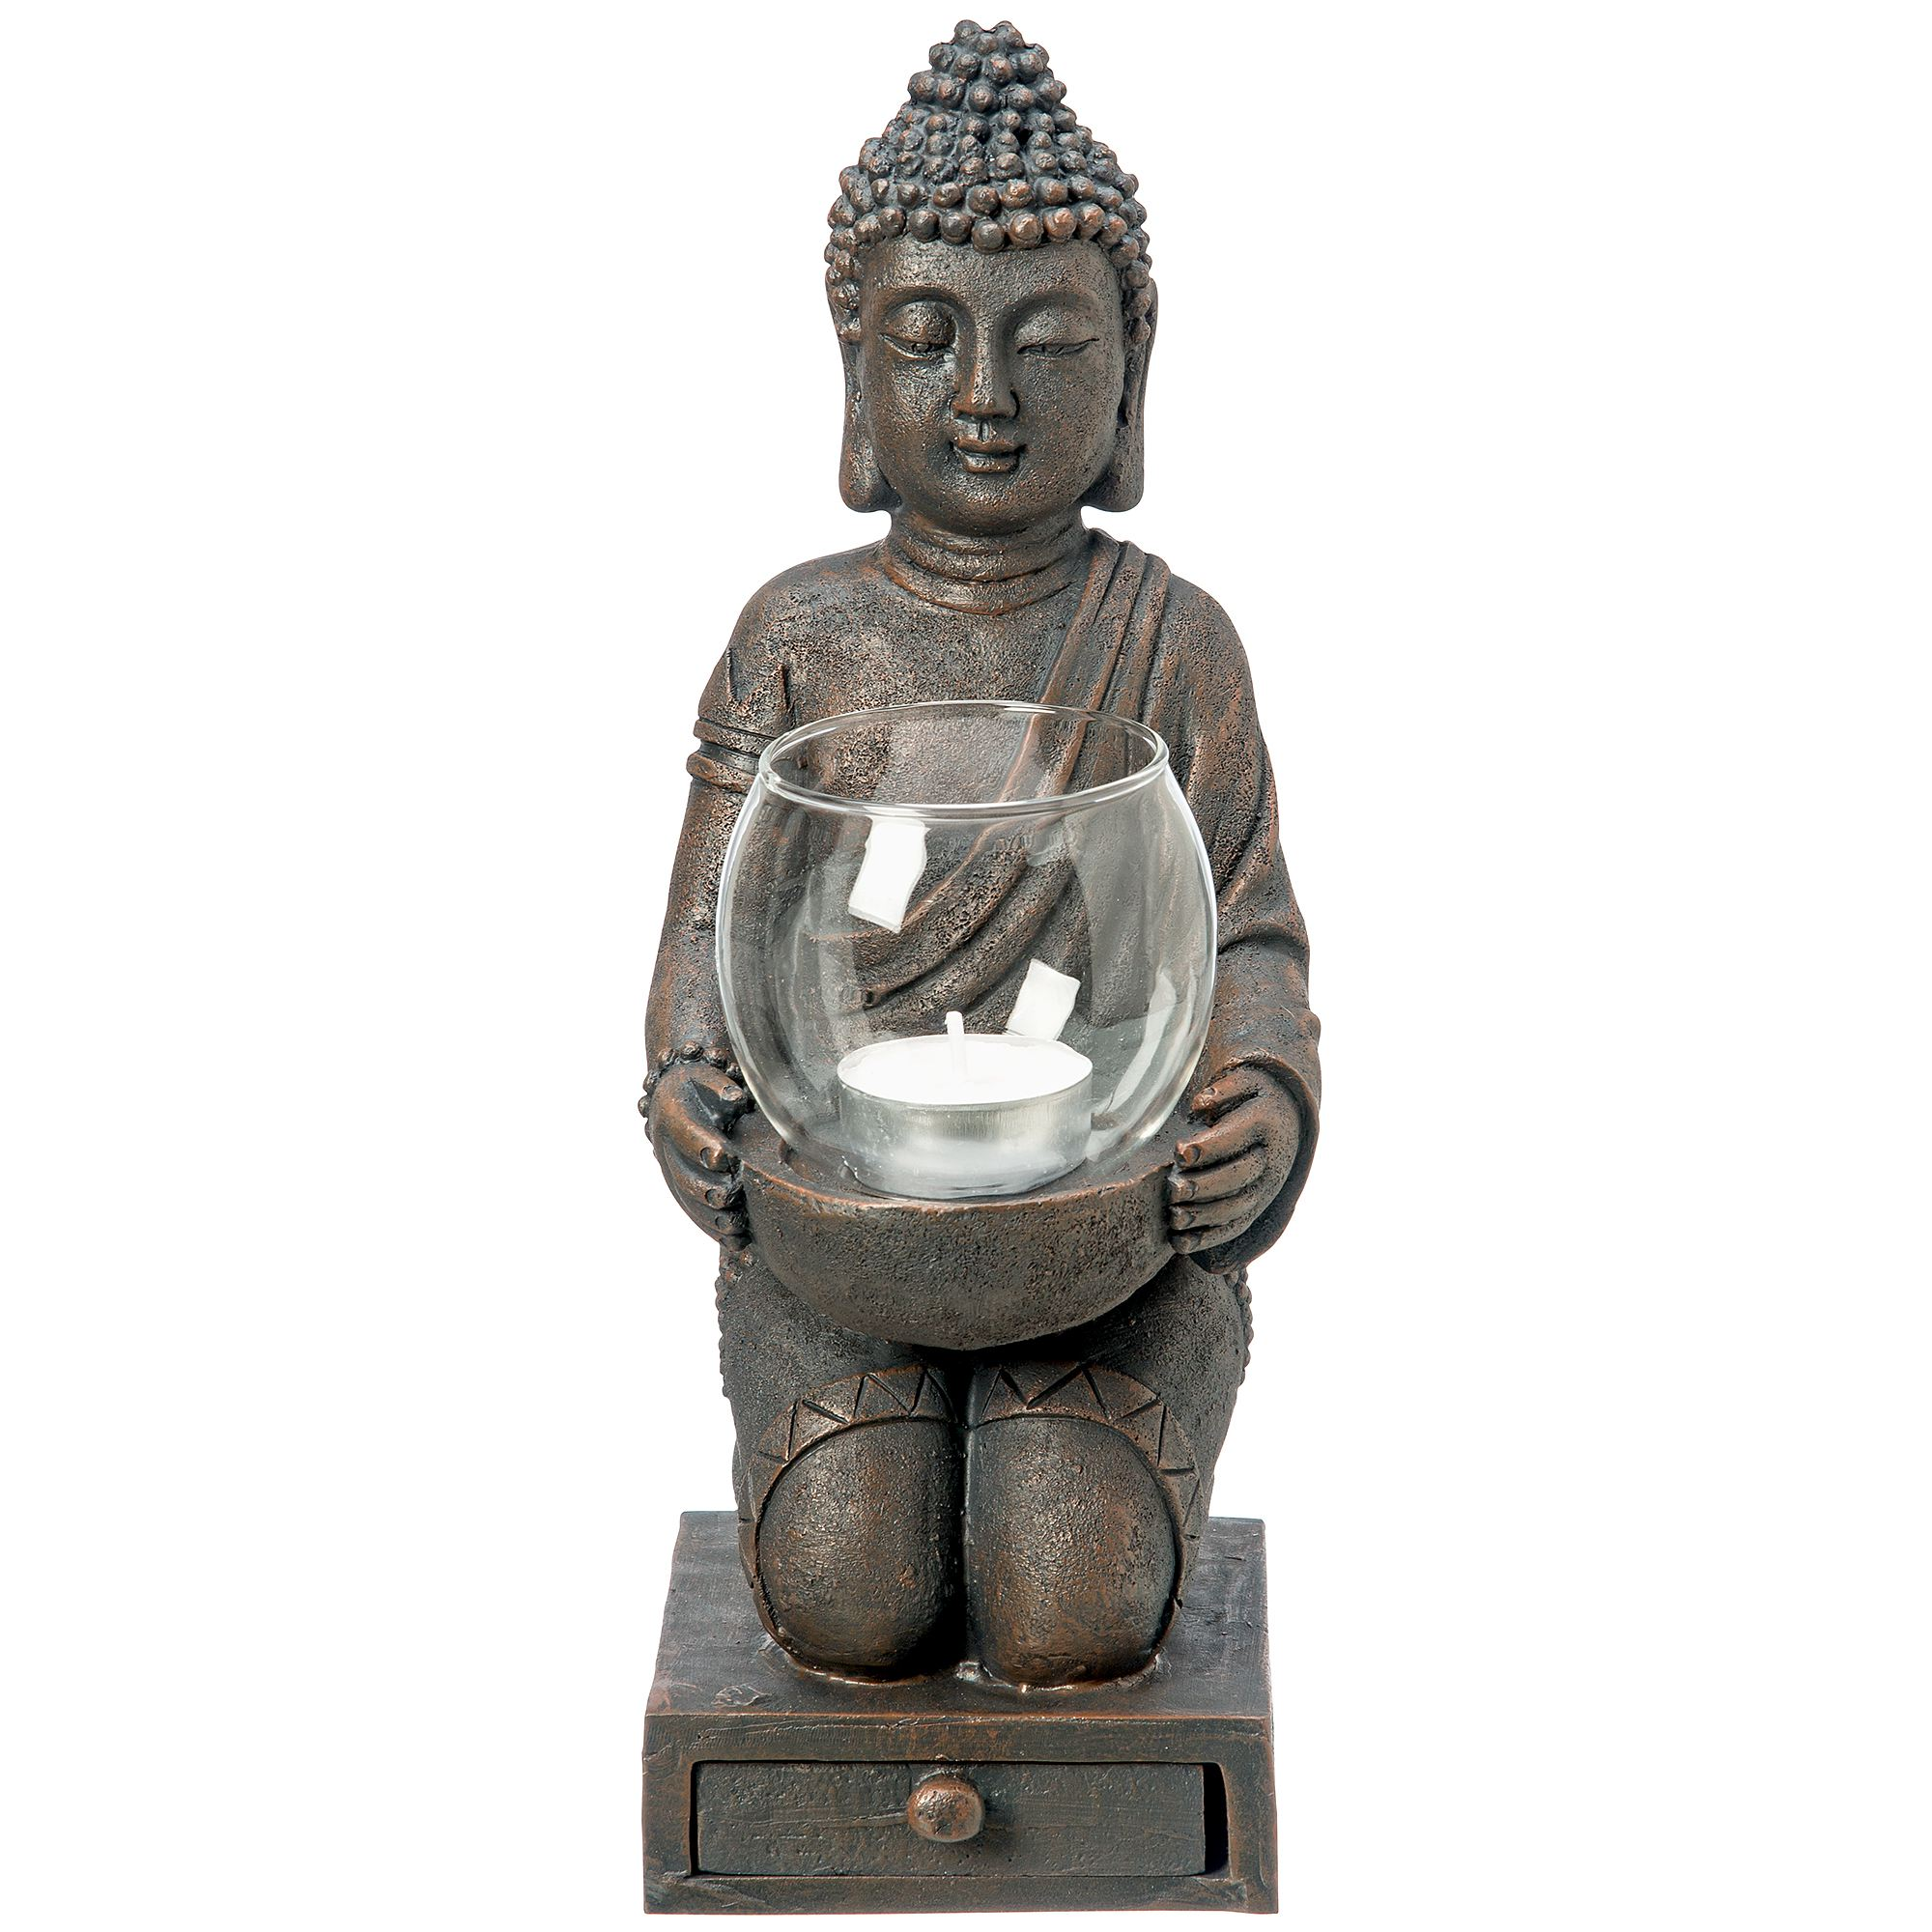 windlicht buddha 30 cm budda figur statue dekoration teelichthalter kerzenhalter kunstharz. Black Bedroom Furniture Sets. Home Design Ideas